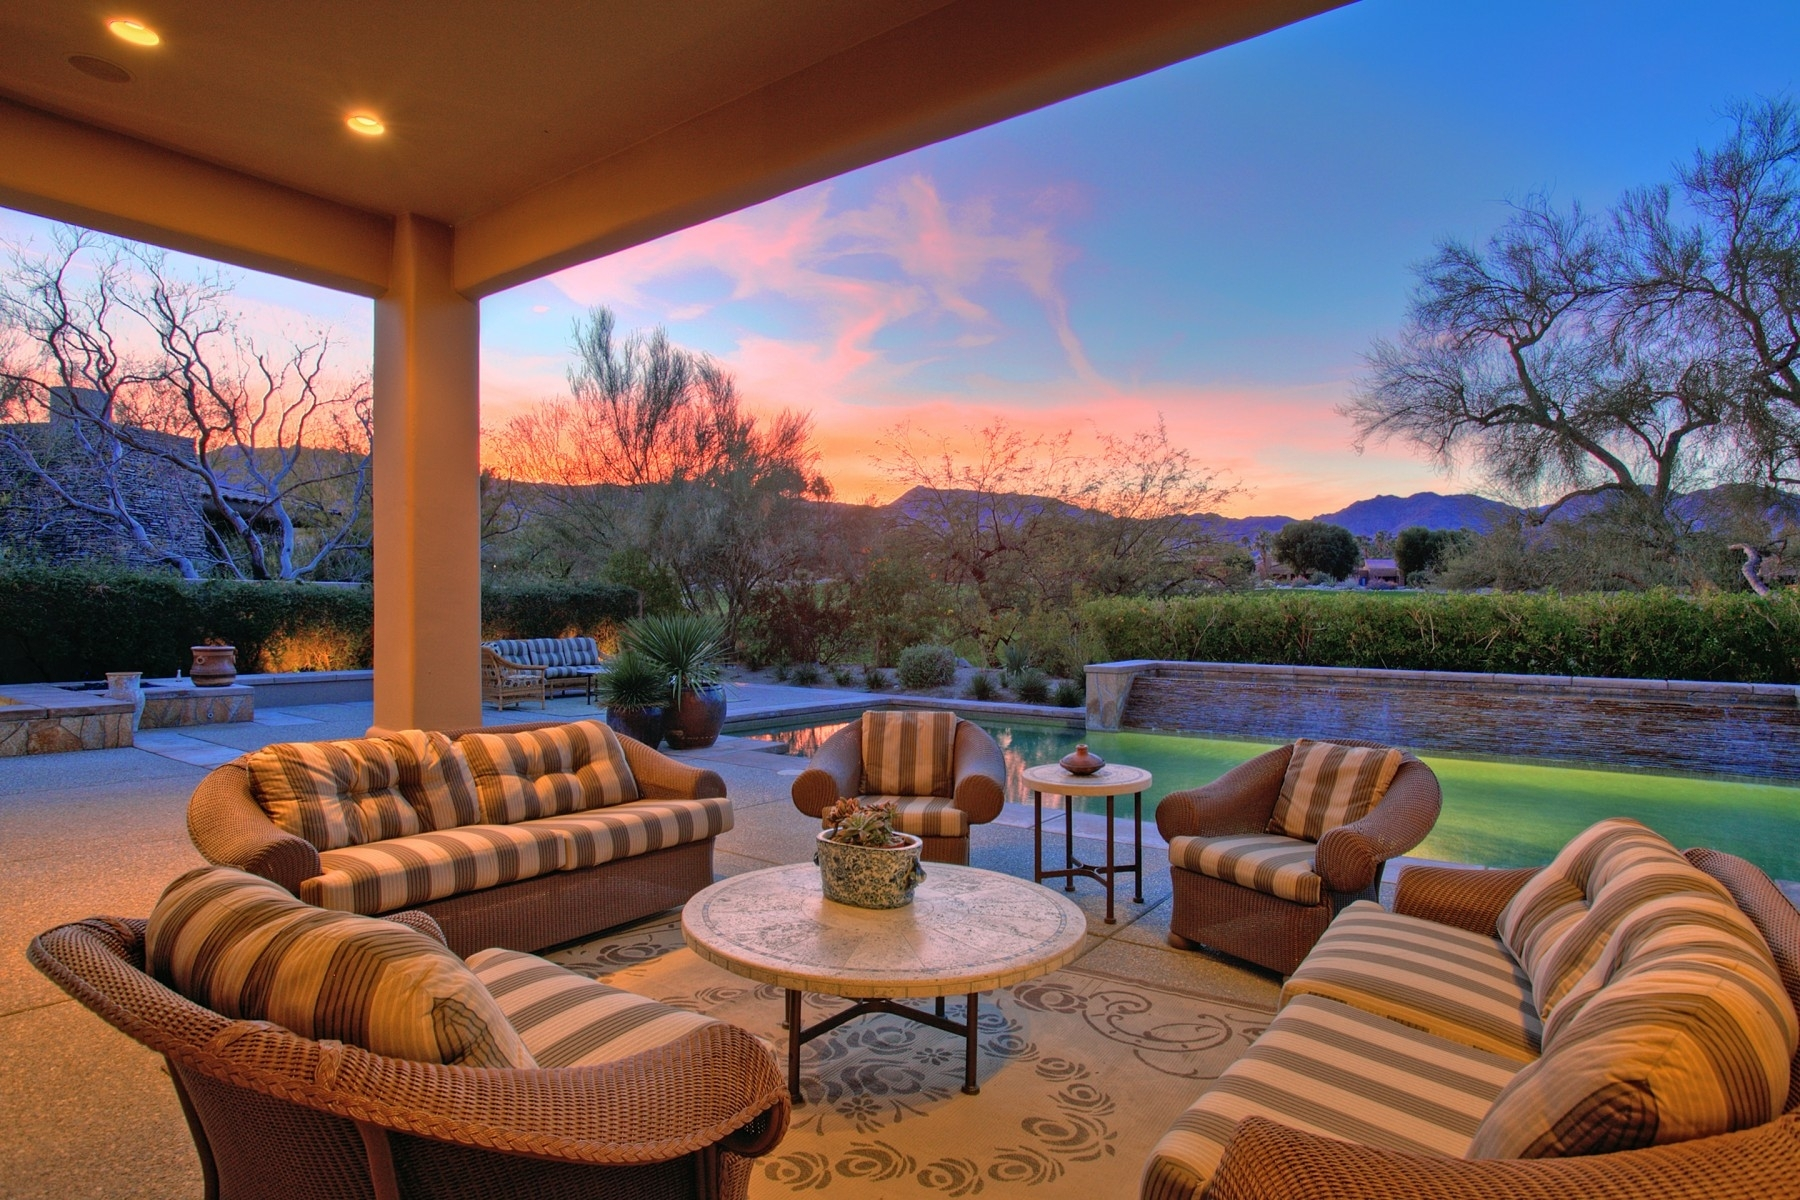 Scottsdale Arizona Homes For Sale With Corey Frederic for Desert Gardens Apartments